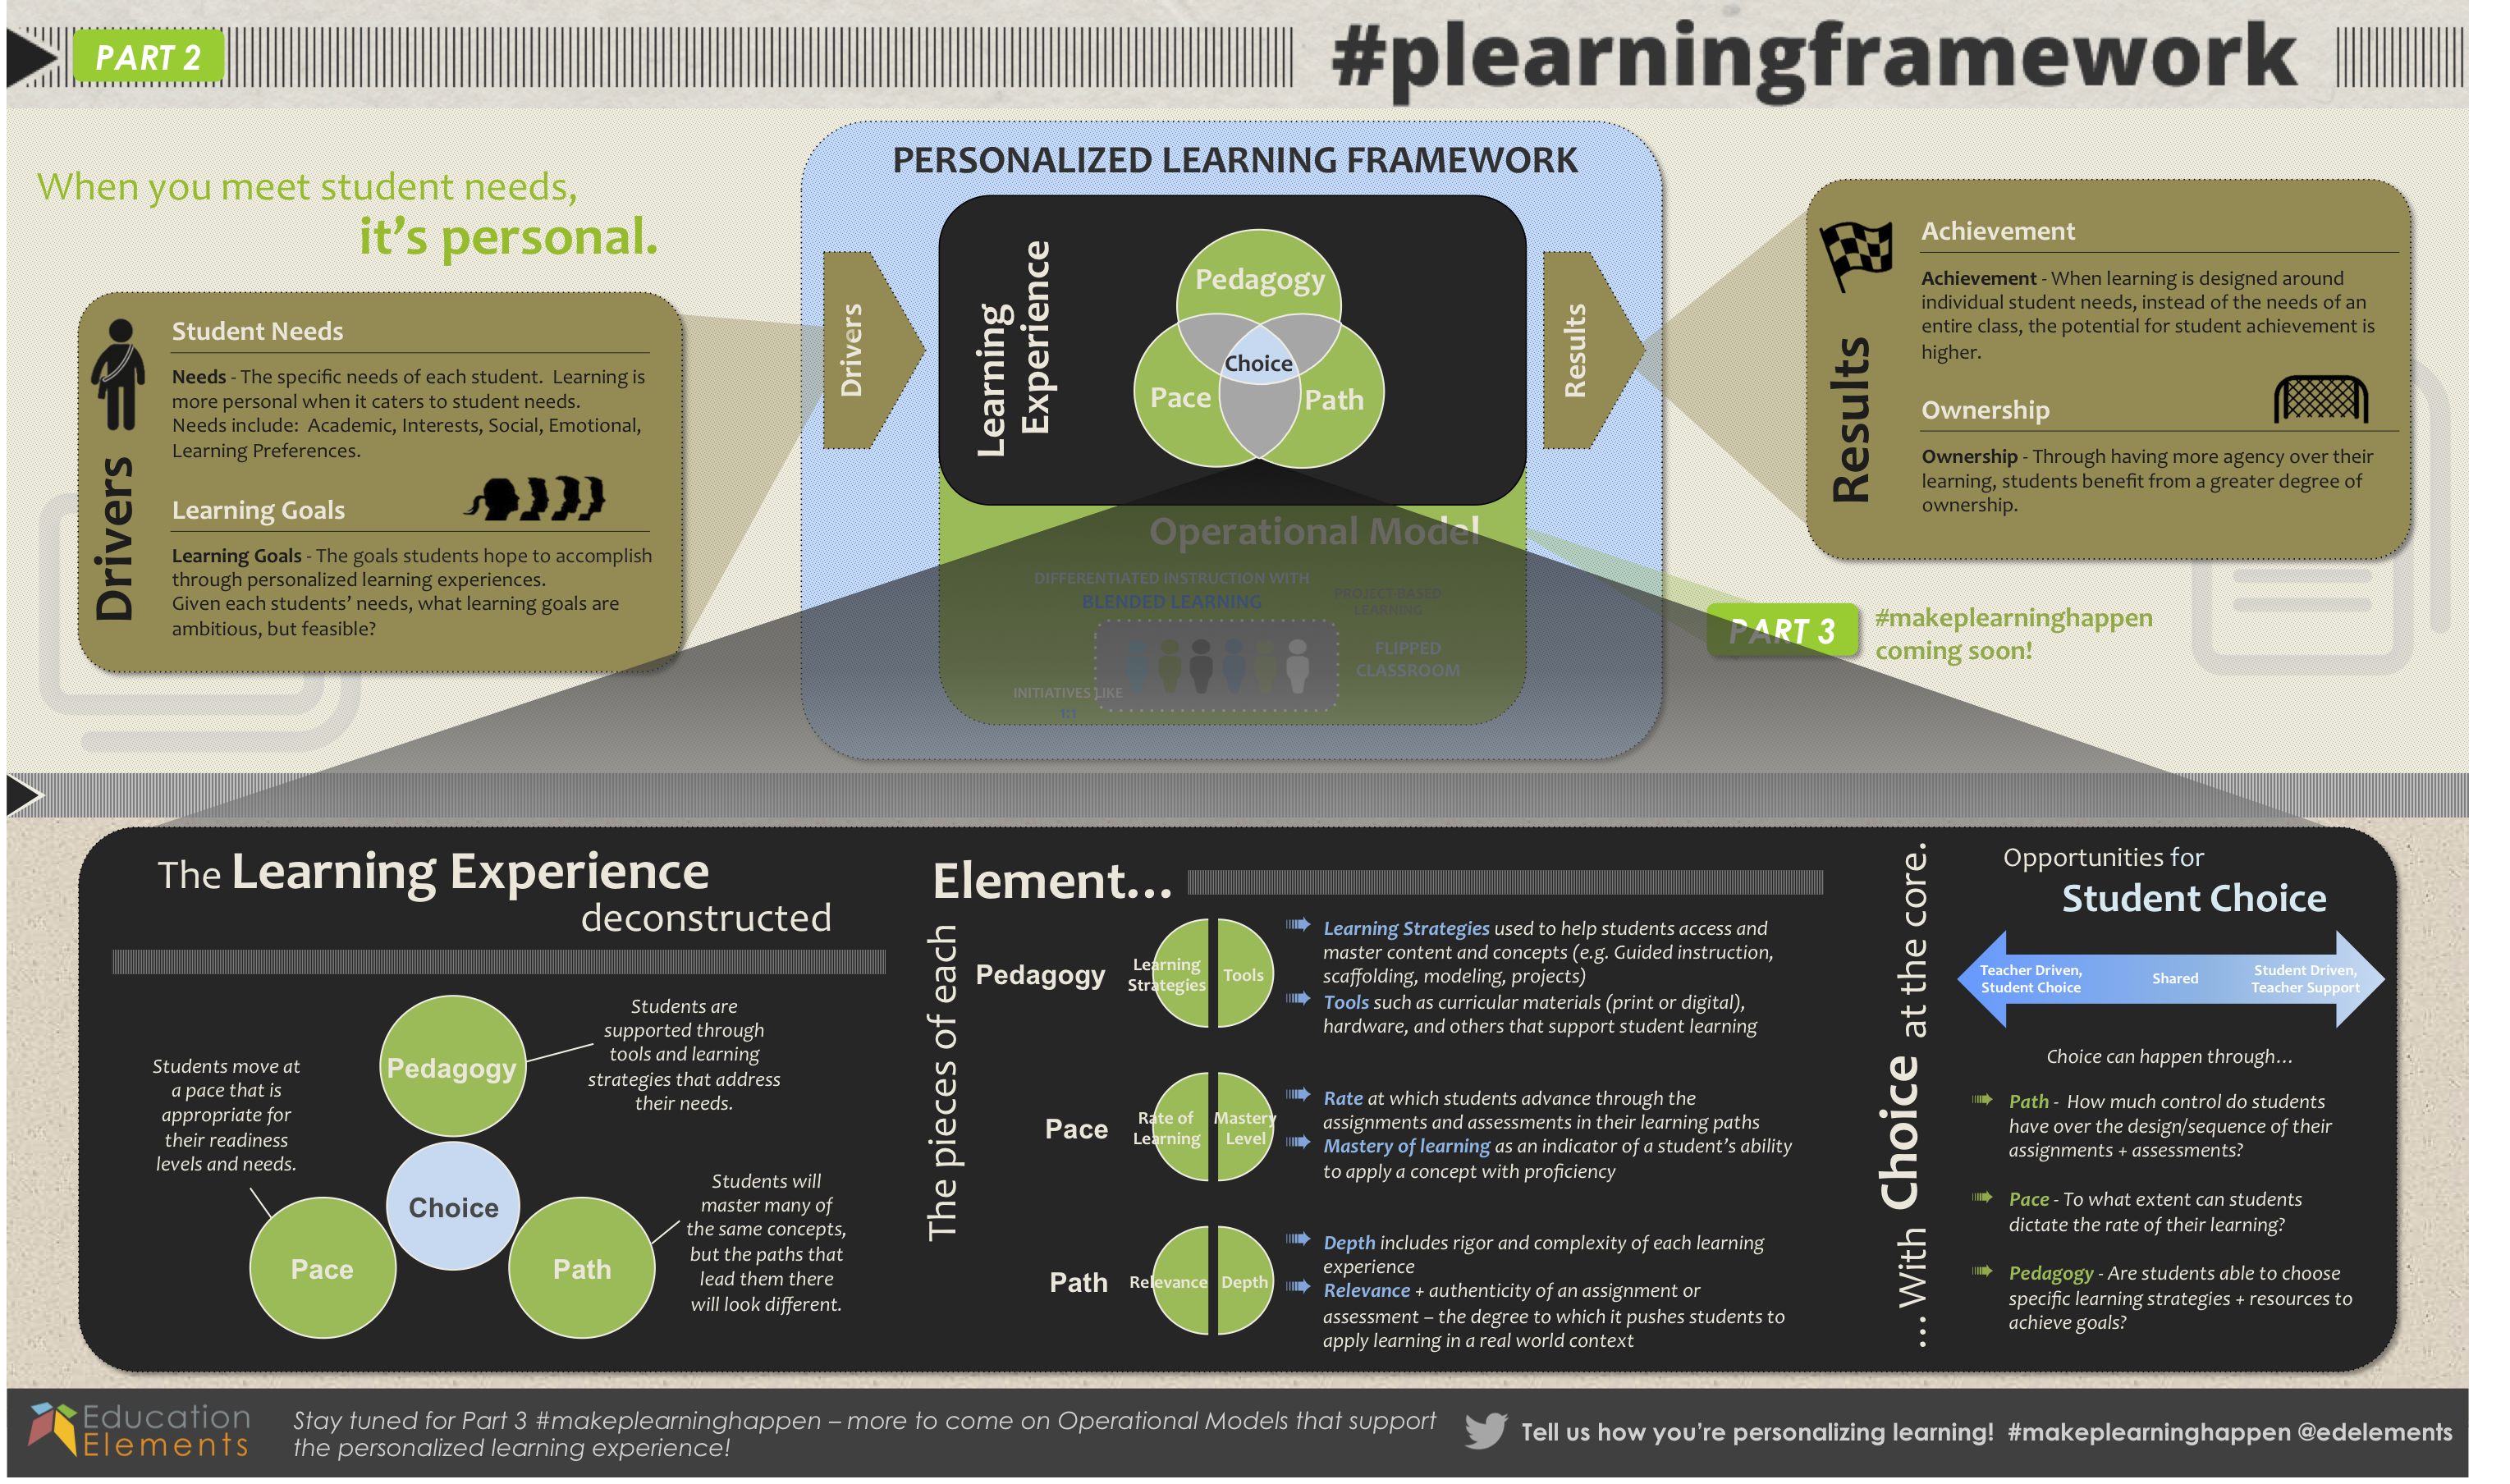 #plearningframework (part 2 of our series)